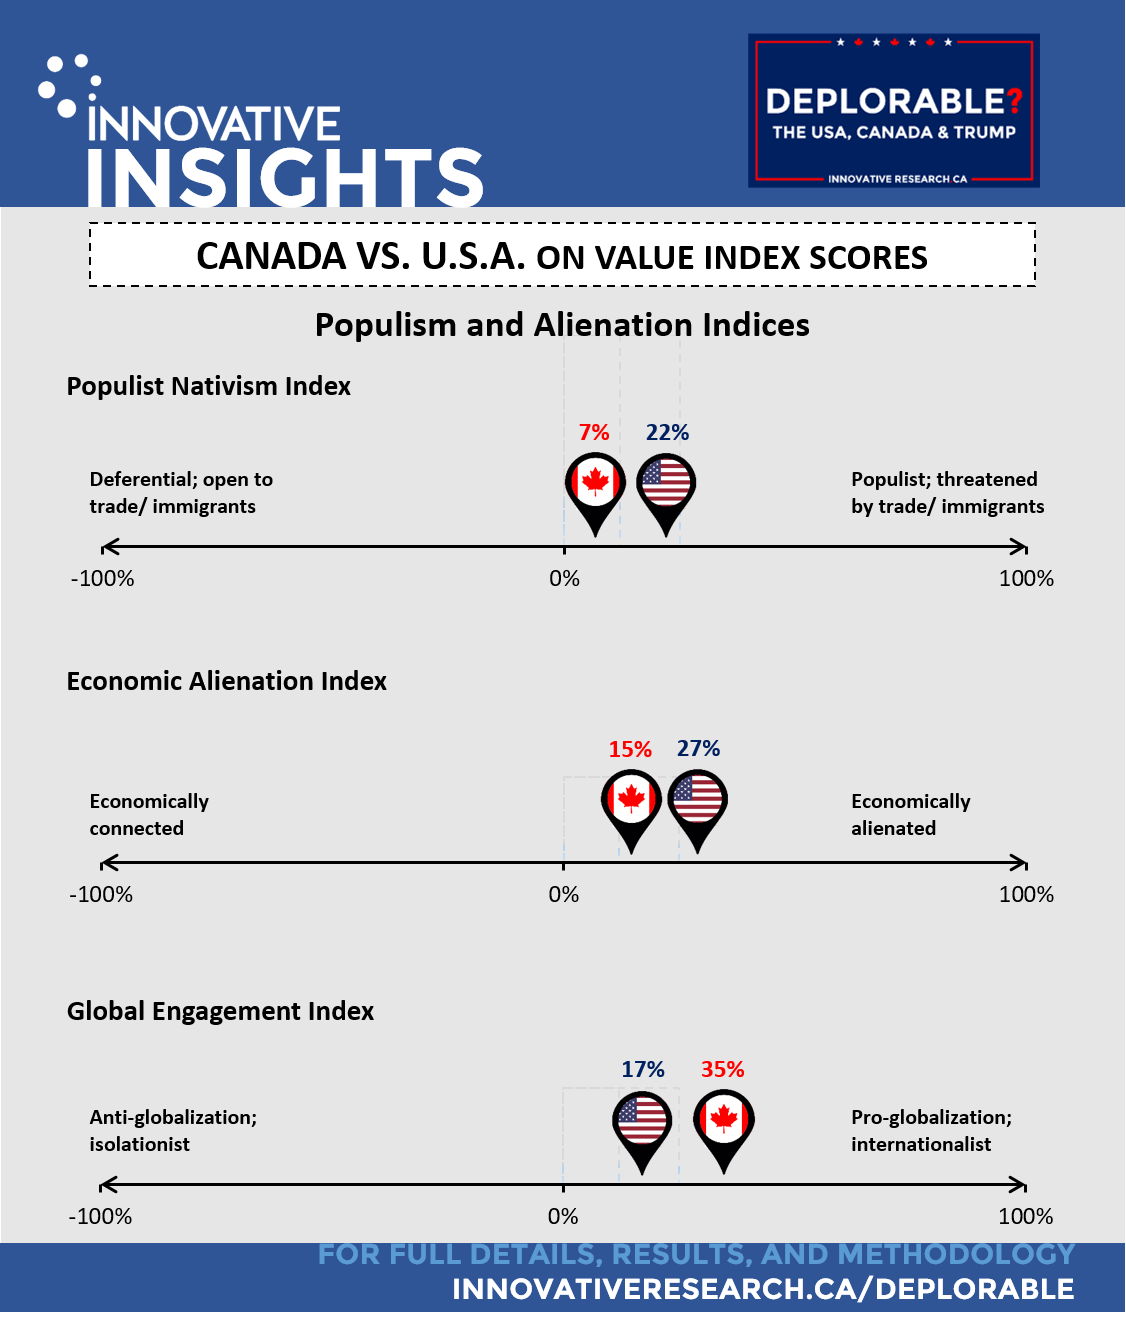 infographic-deplorable-populism-and-alienation-indices